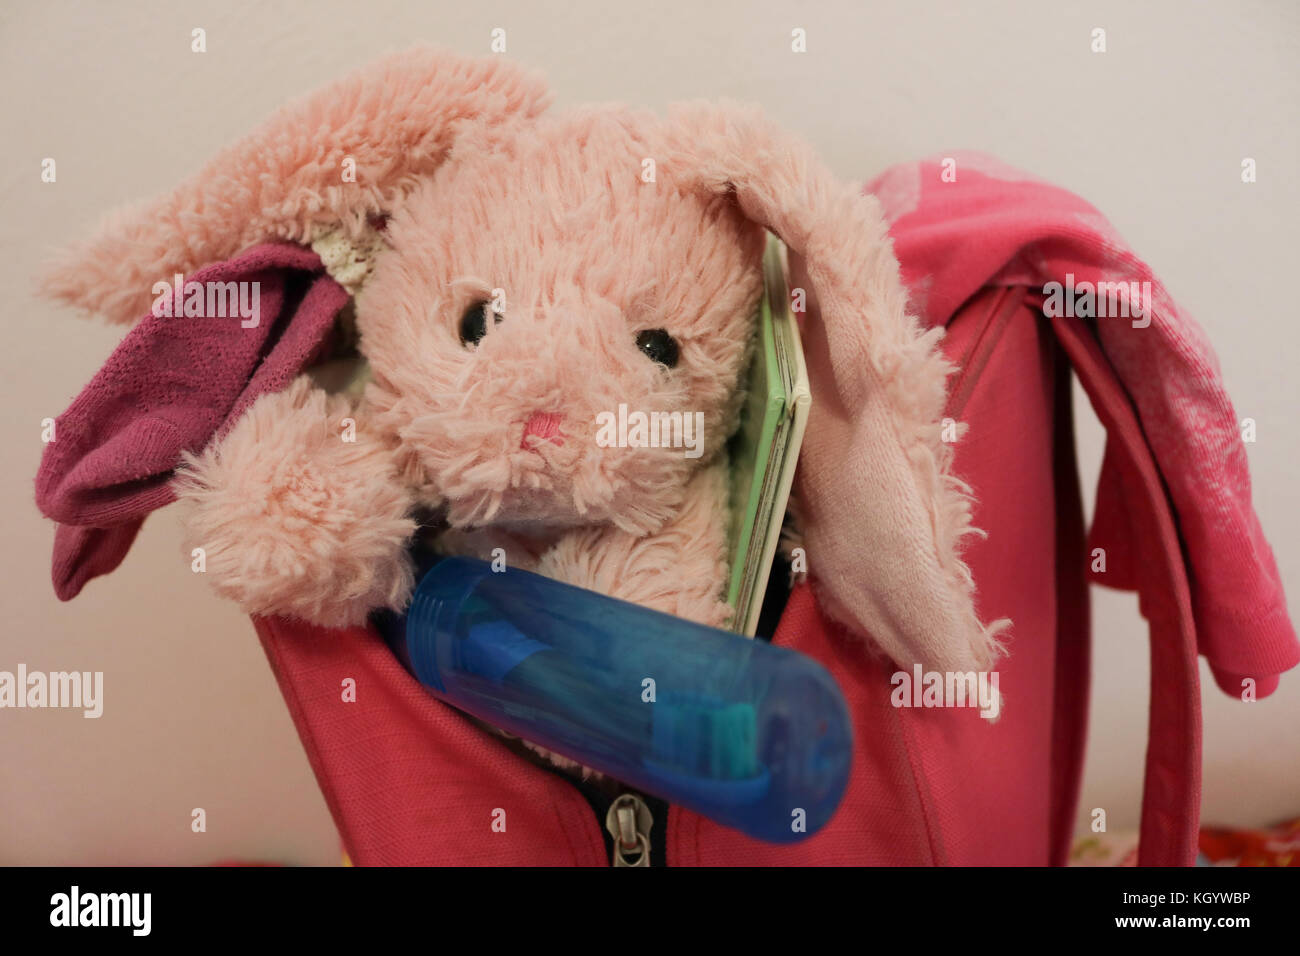 Close up of a girl's backpack ready for overnight trip - Stock Image